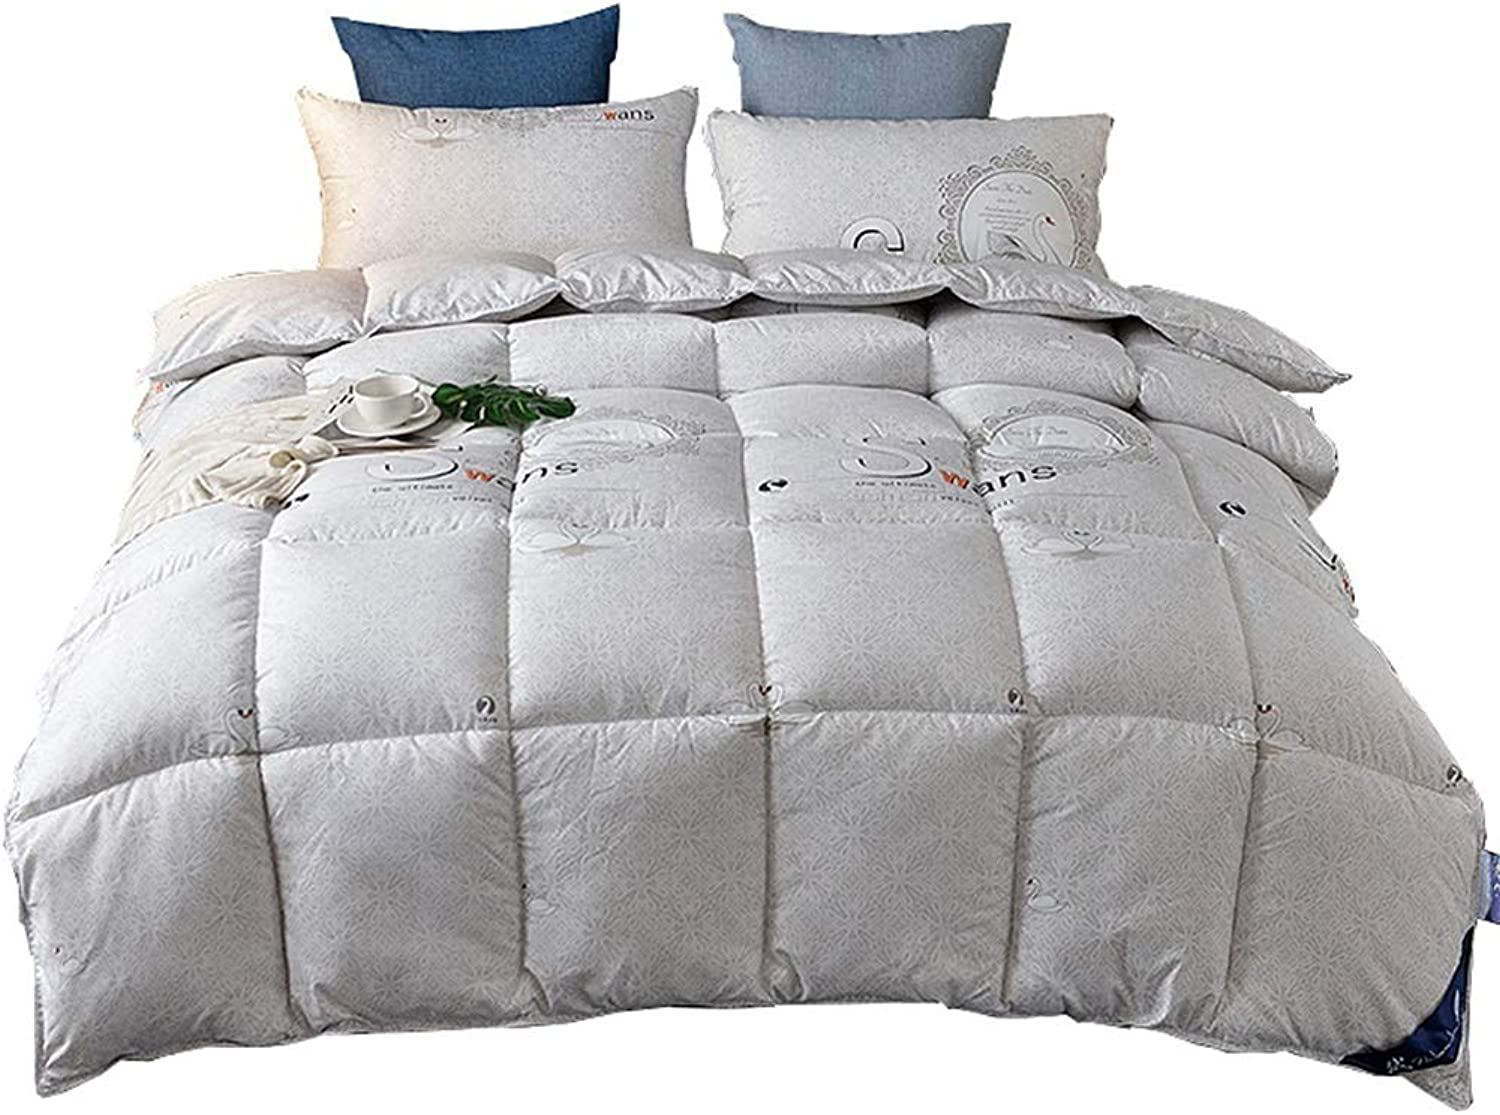 Quilt Plush Siliconized Fiberfill Quilted Comforter with Corner Tabs Warm and Soft for All Season Prevent Allergy (Size   220cmx240cm3kg)